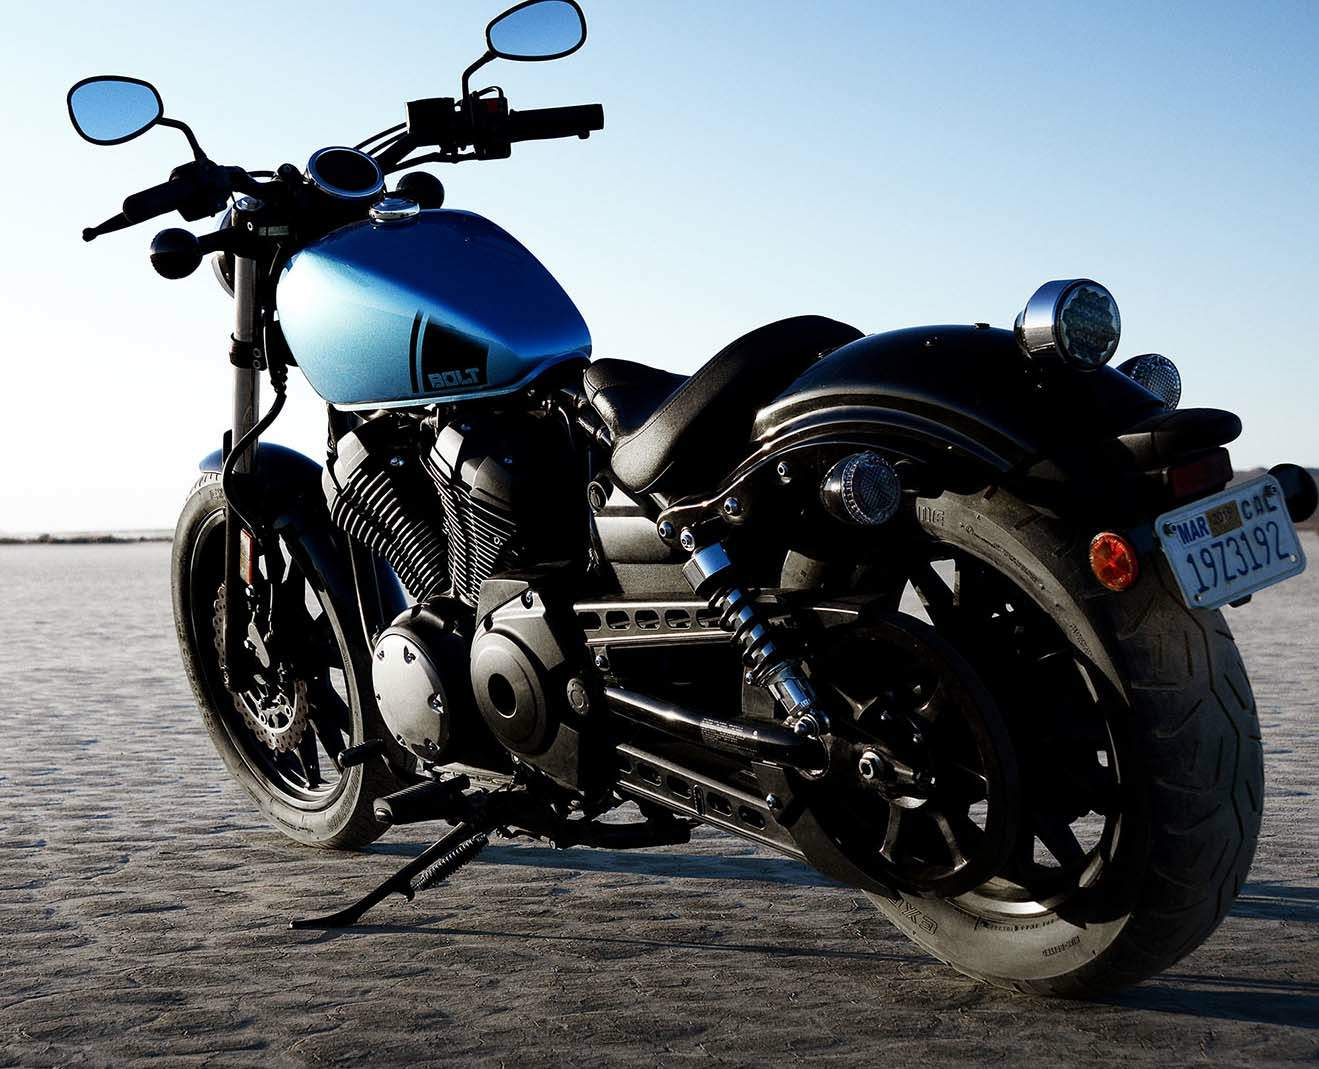 Мотоцикл Yamaha XVS 950 V-Star Bolt 2016